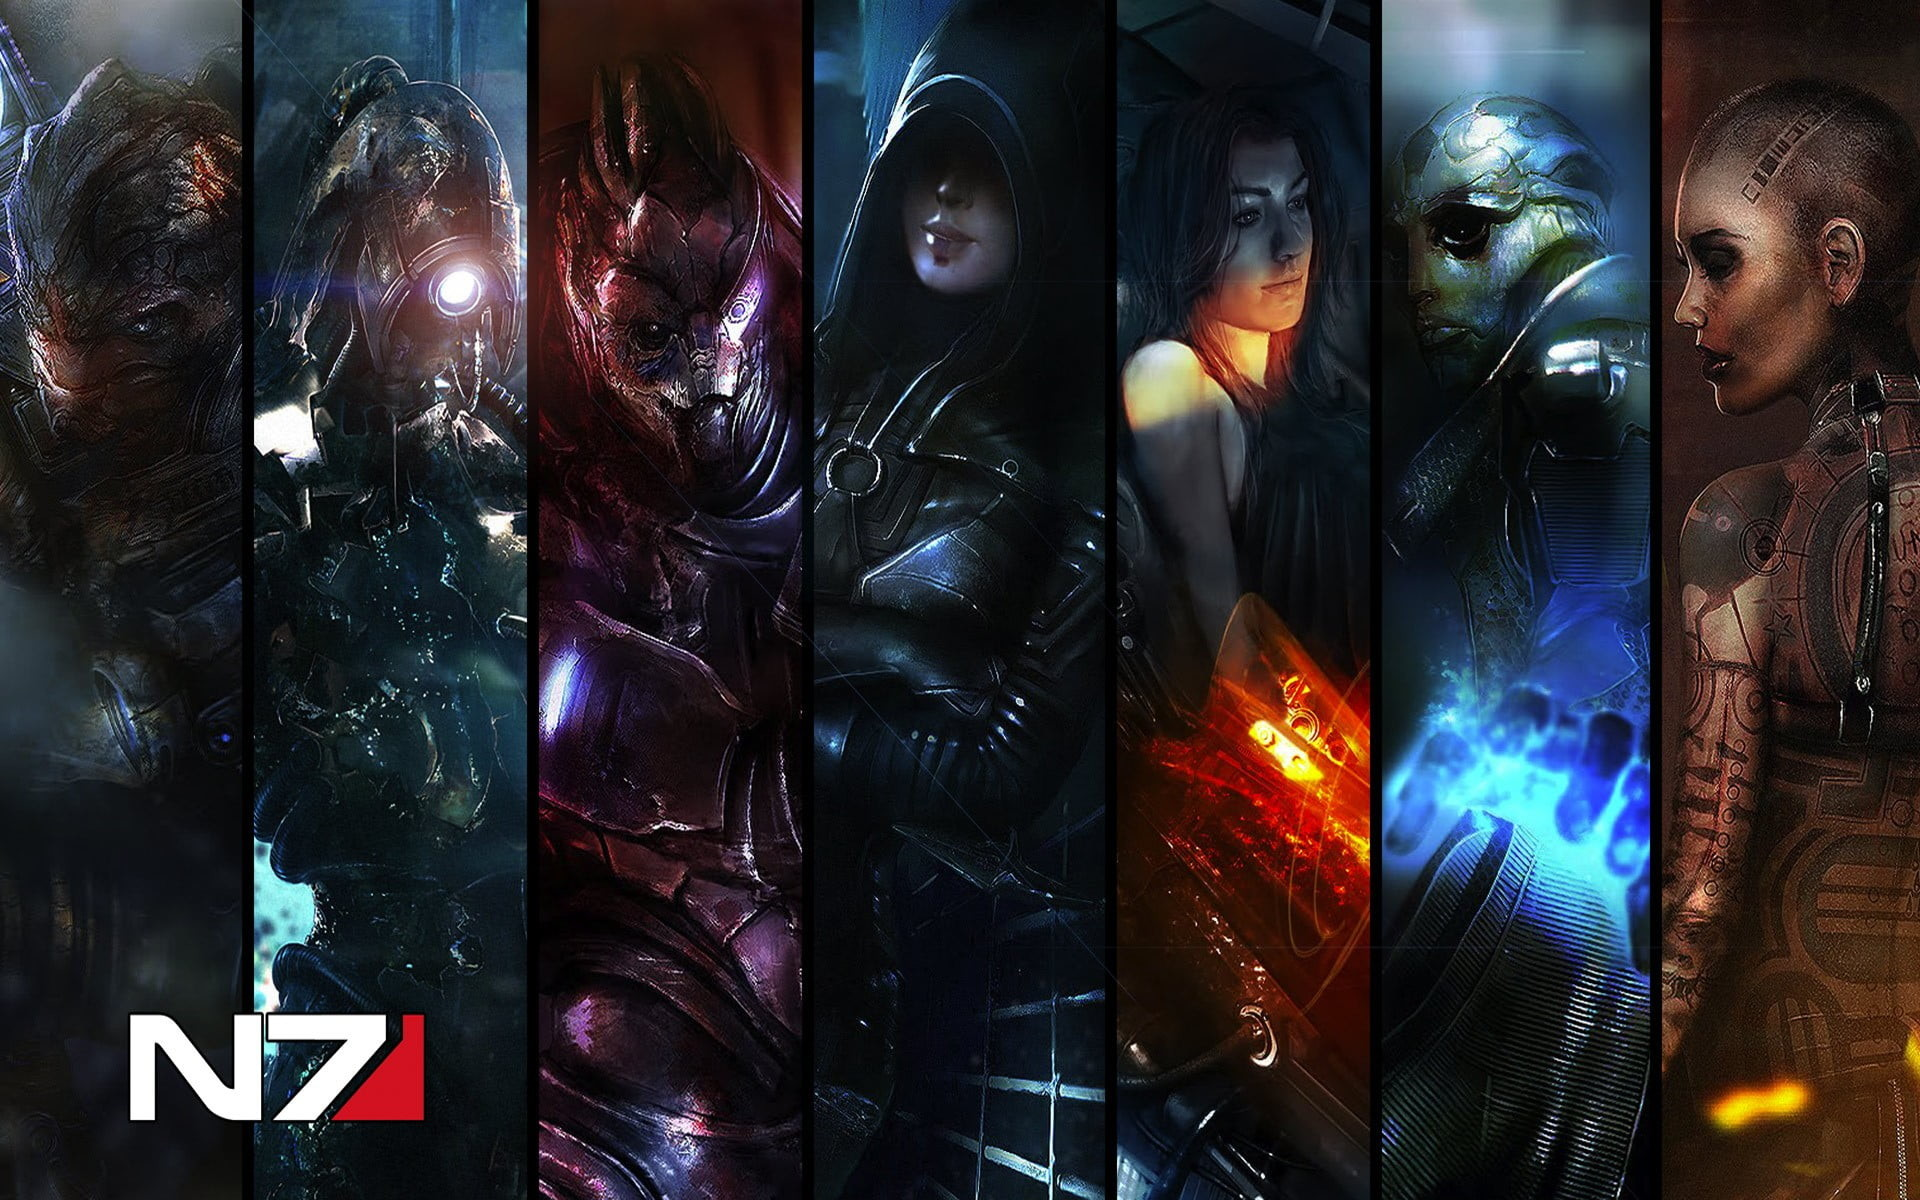 Res: 1920x1200, N7 characters advertisement HD wallpaper